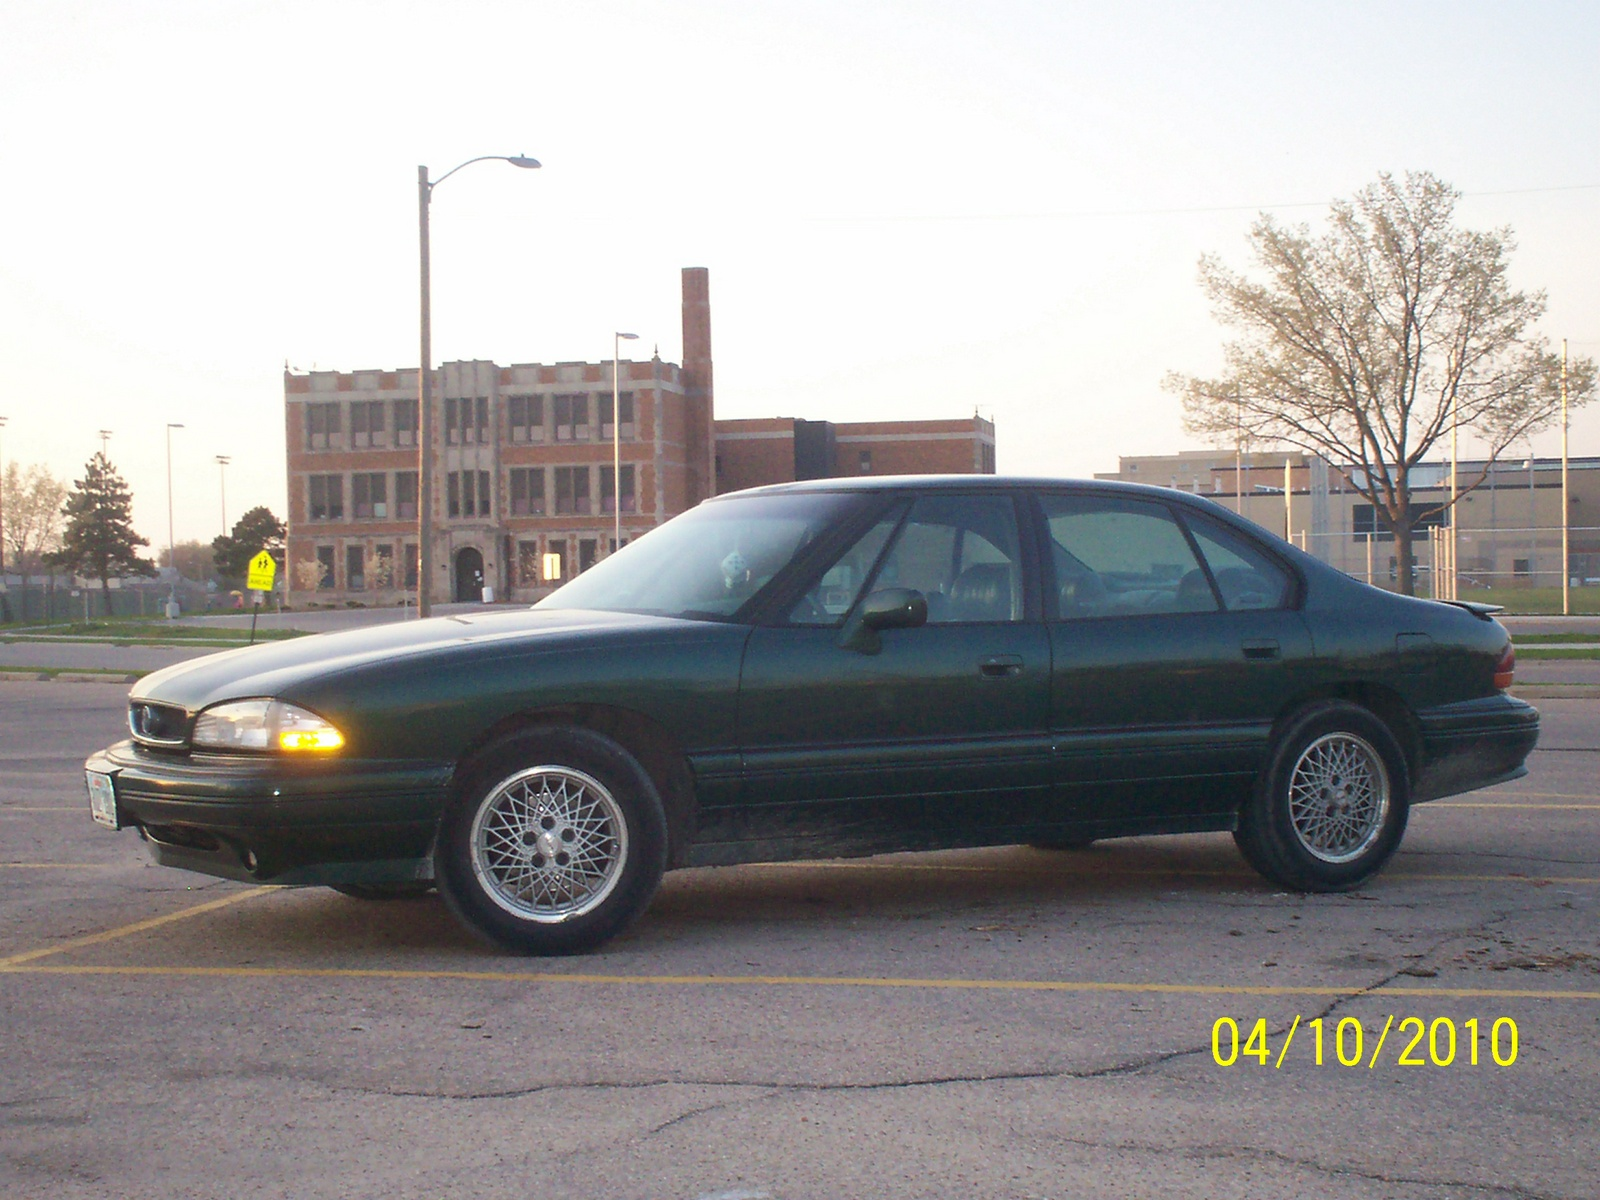 2001 pontiac bonneville ssei specs with 1994 Pontiac Bonneville Overview C3345 on 2003 Pontiac Bonneville SSEi Pictures T9437 pi35654278 likewise Engine 40358557 together with 1999 Pontiac Bonneville Pictures C3315 pi36381807 likewise Engine additionally 1993 Pontiac Bonneville Overview C3351.